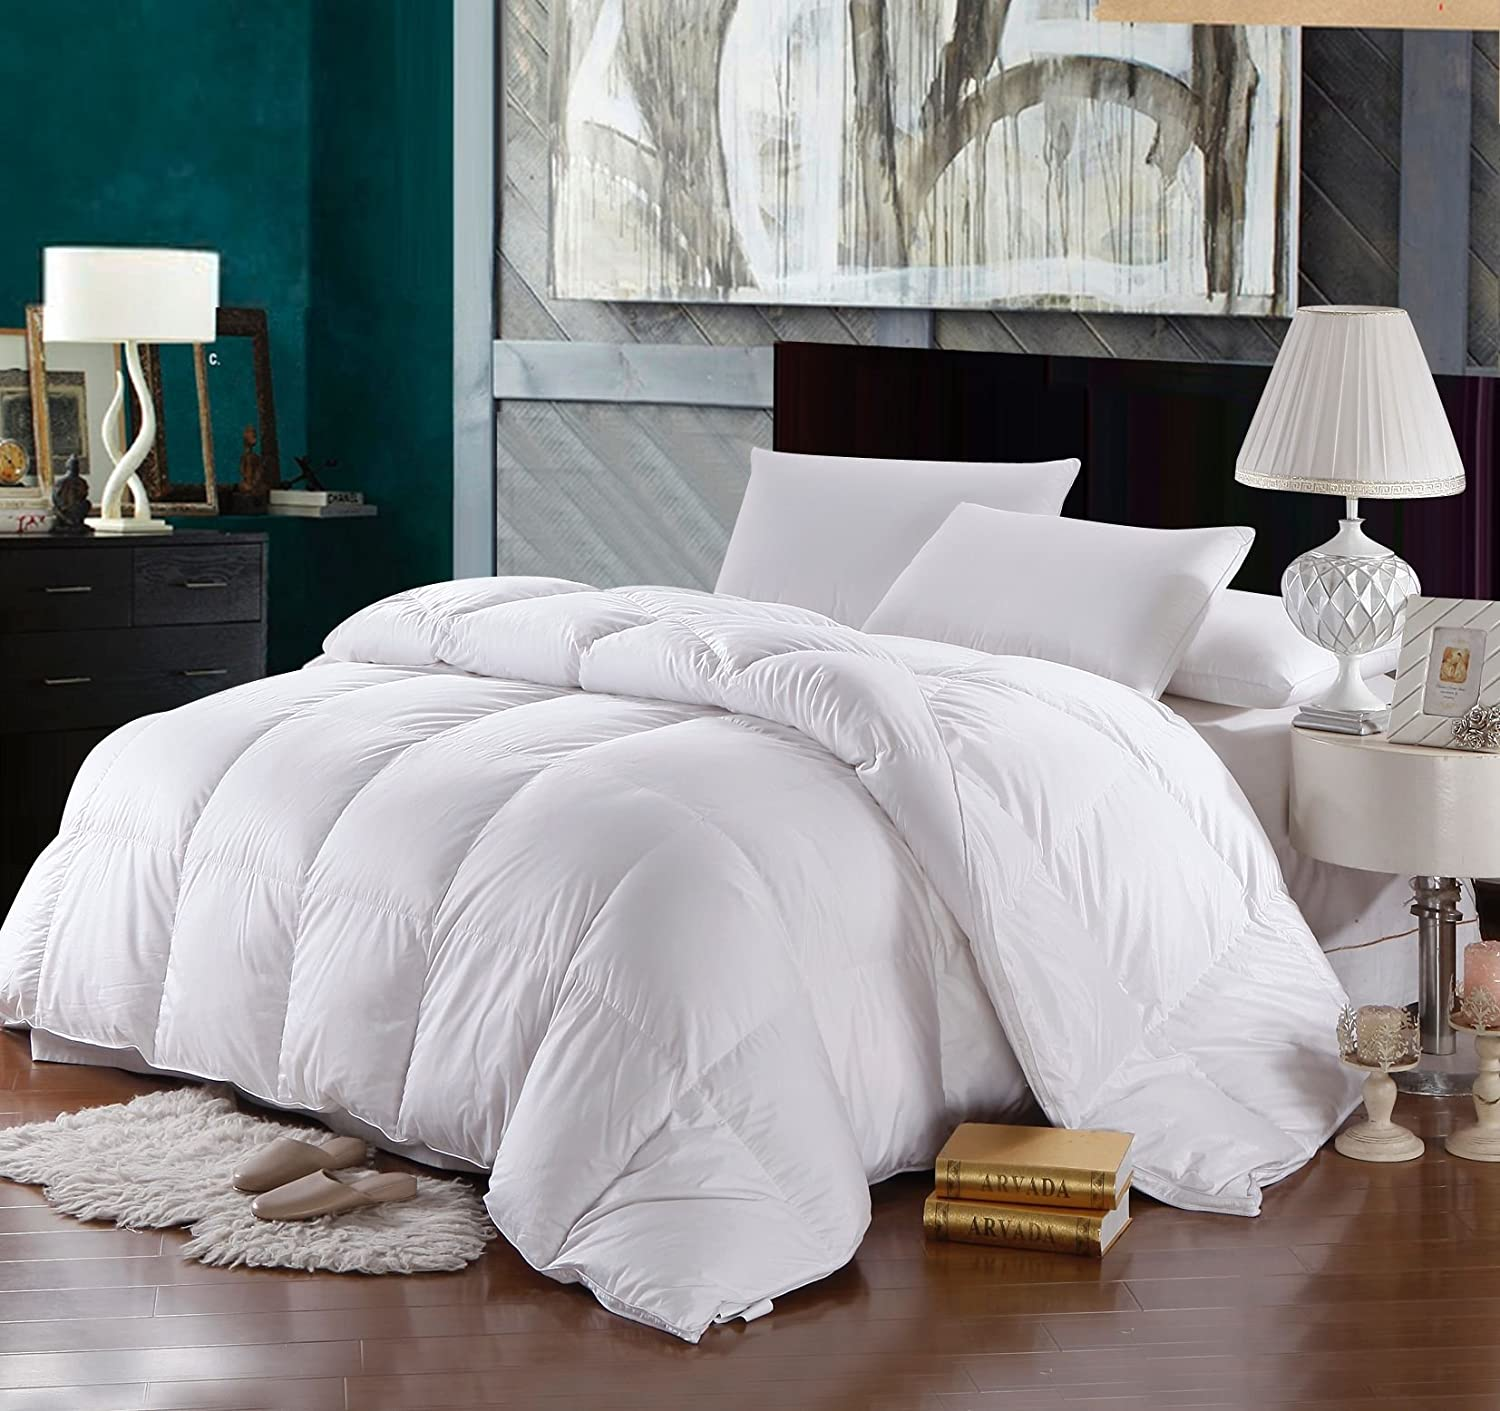 king size down comforter Amazon.com: California King Size Down Comforter 500 Thread Count  king size down comforter